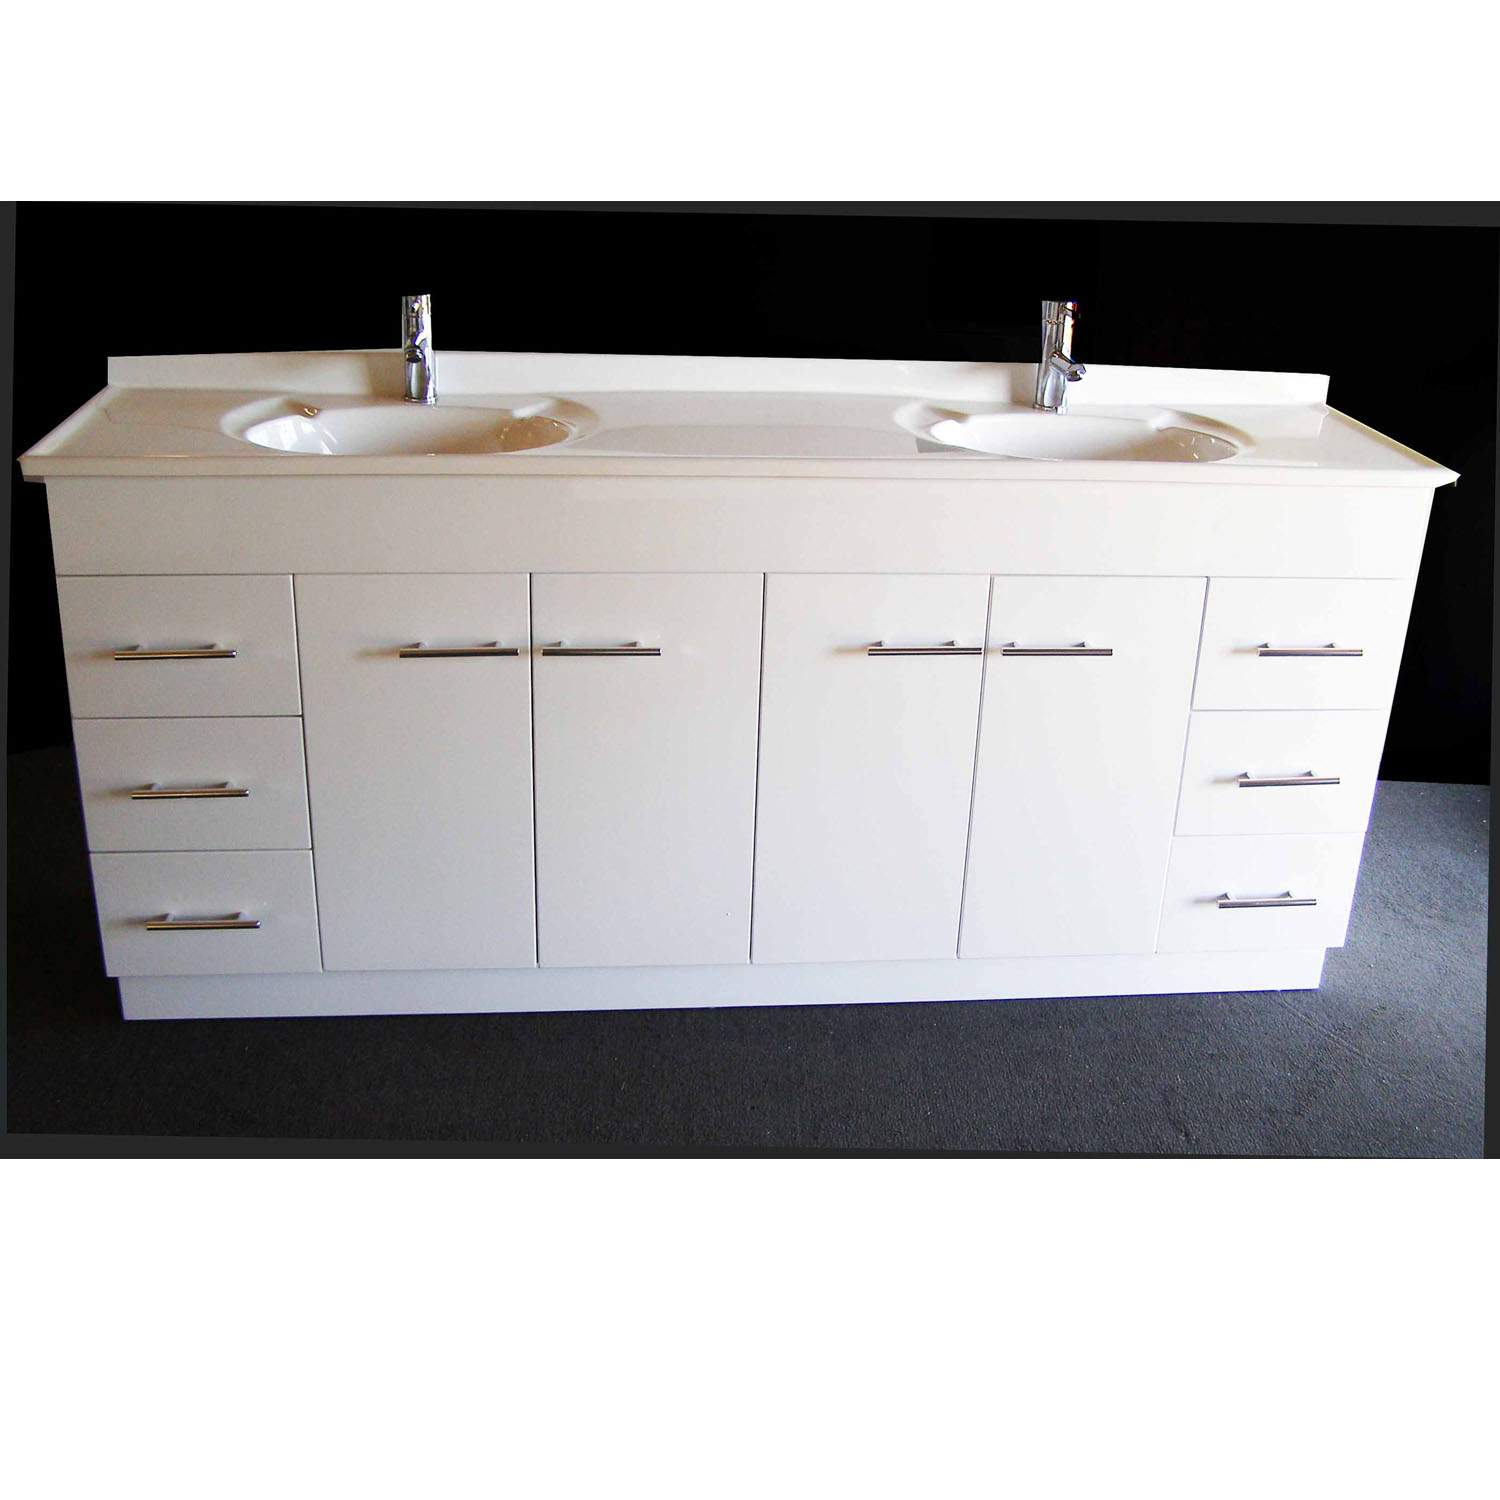 Daedalus Wp 1800mm Bathroom Vanity Unit With Australian